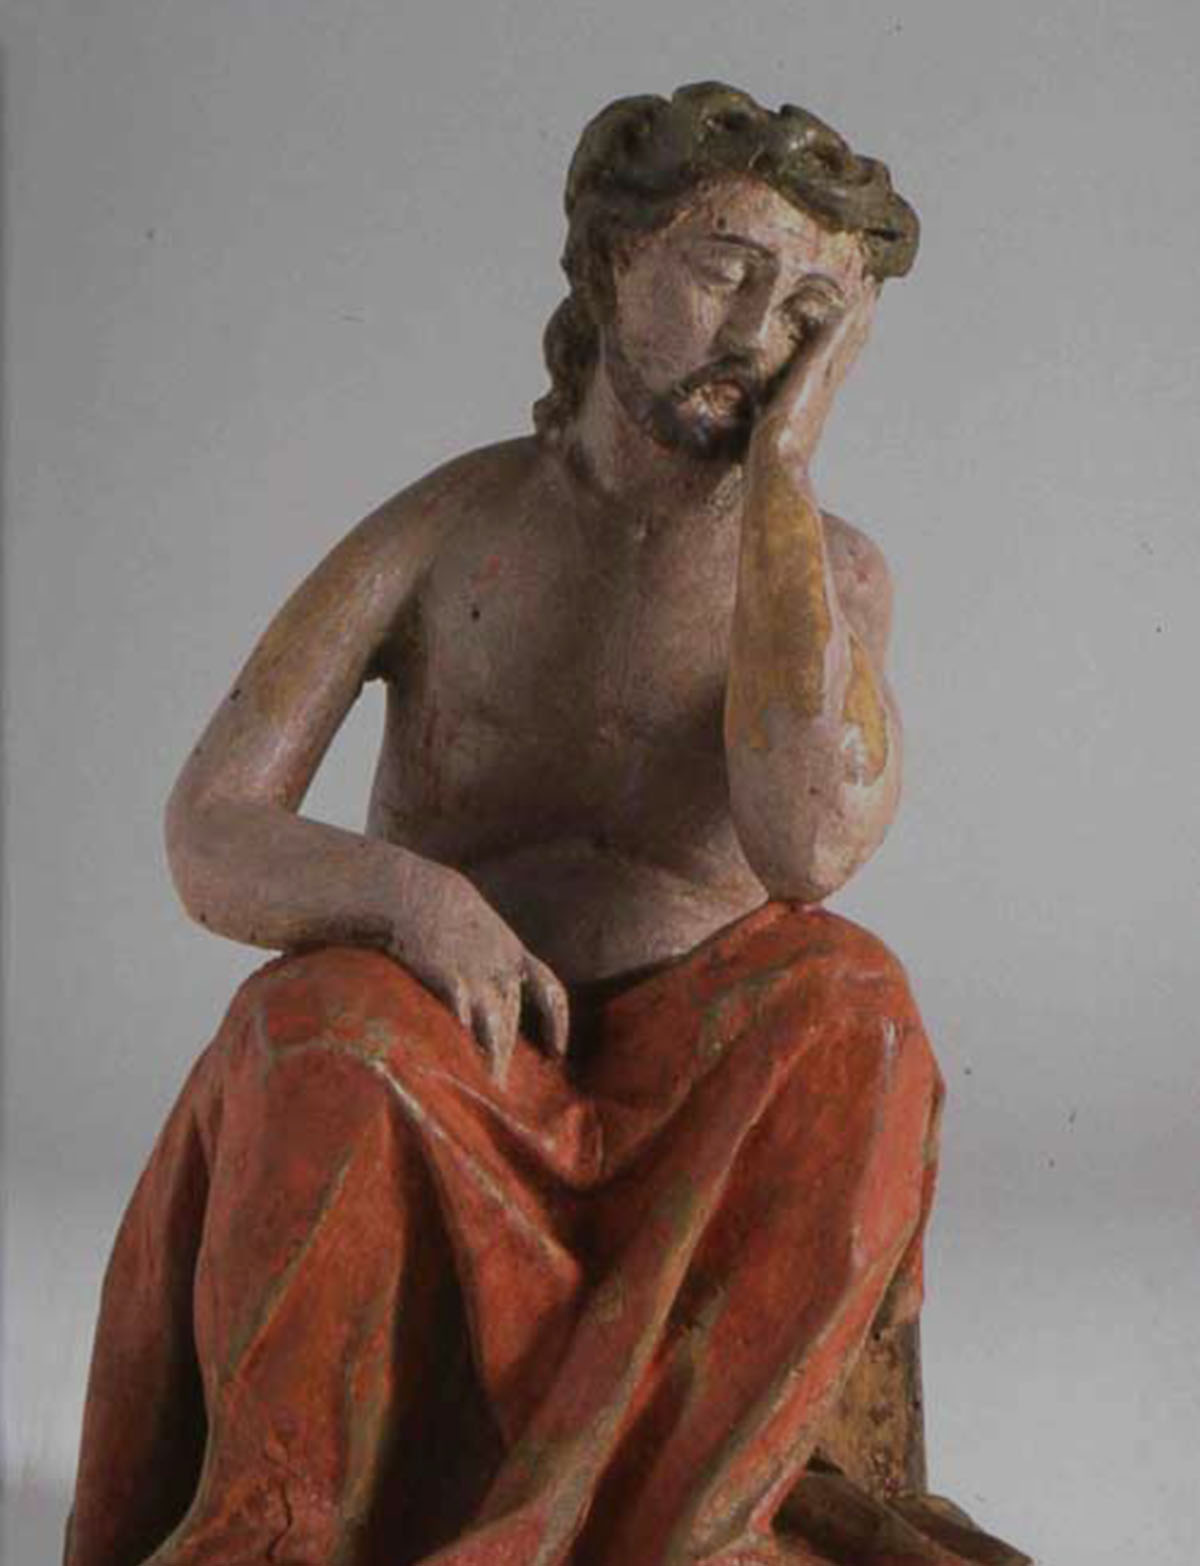 Il Cristo pensoso - Sculptor of the Friuli area, 18th CenturyCarved wood painted and gilded, 21x9,9x12,1 cm